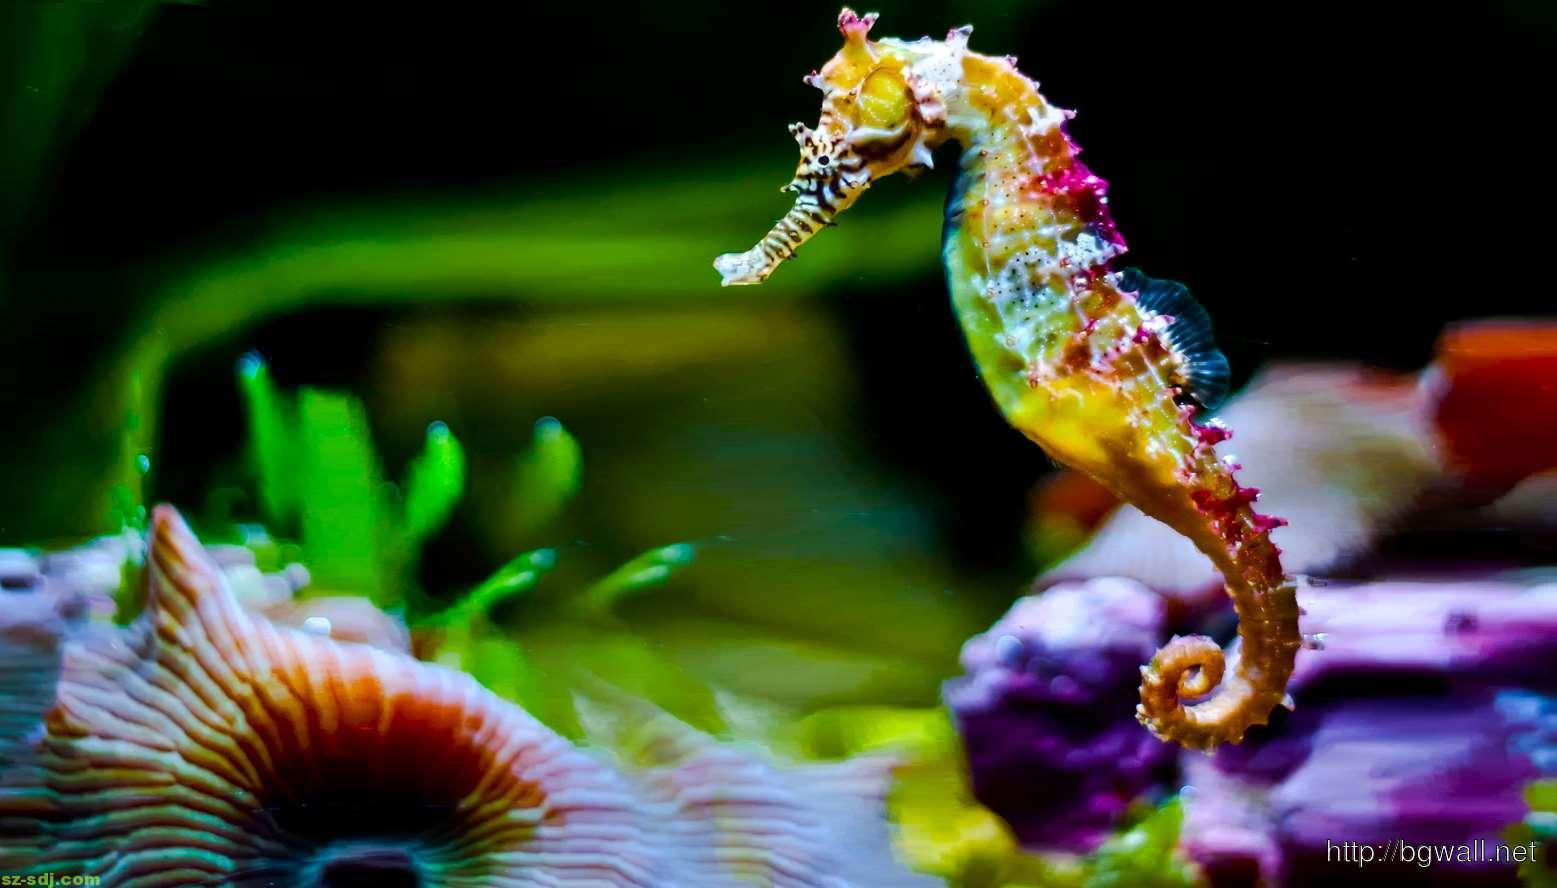 Colorful Seahorse Wallpaper Full Hd Background Wallpaper Hd